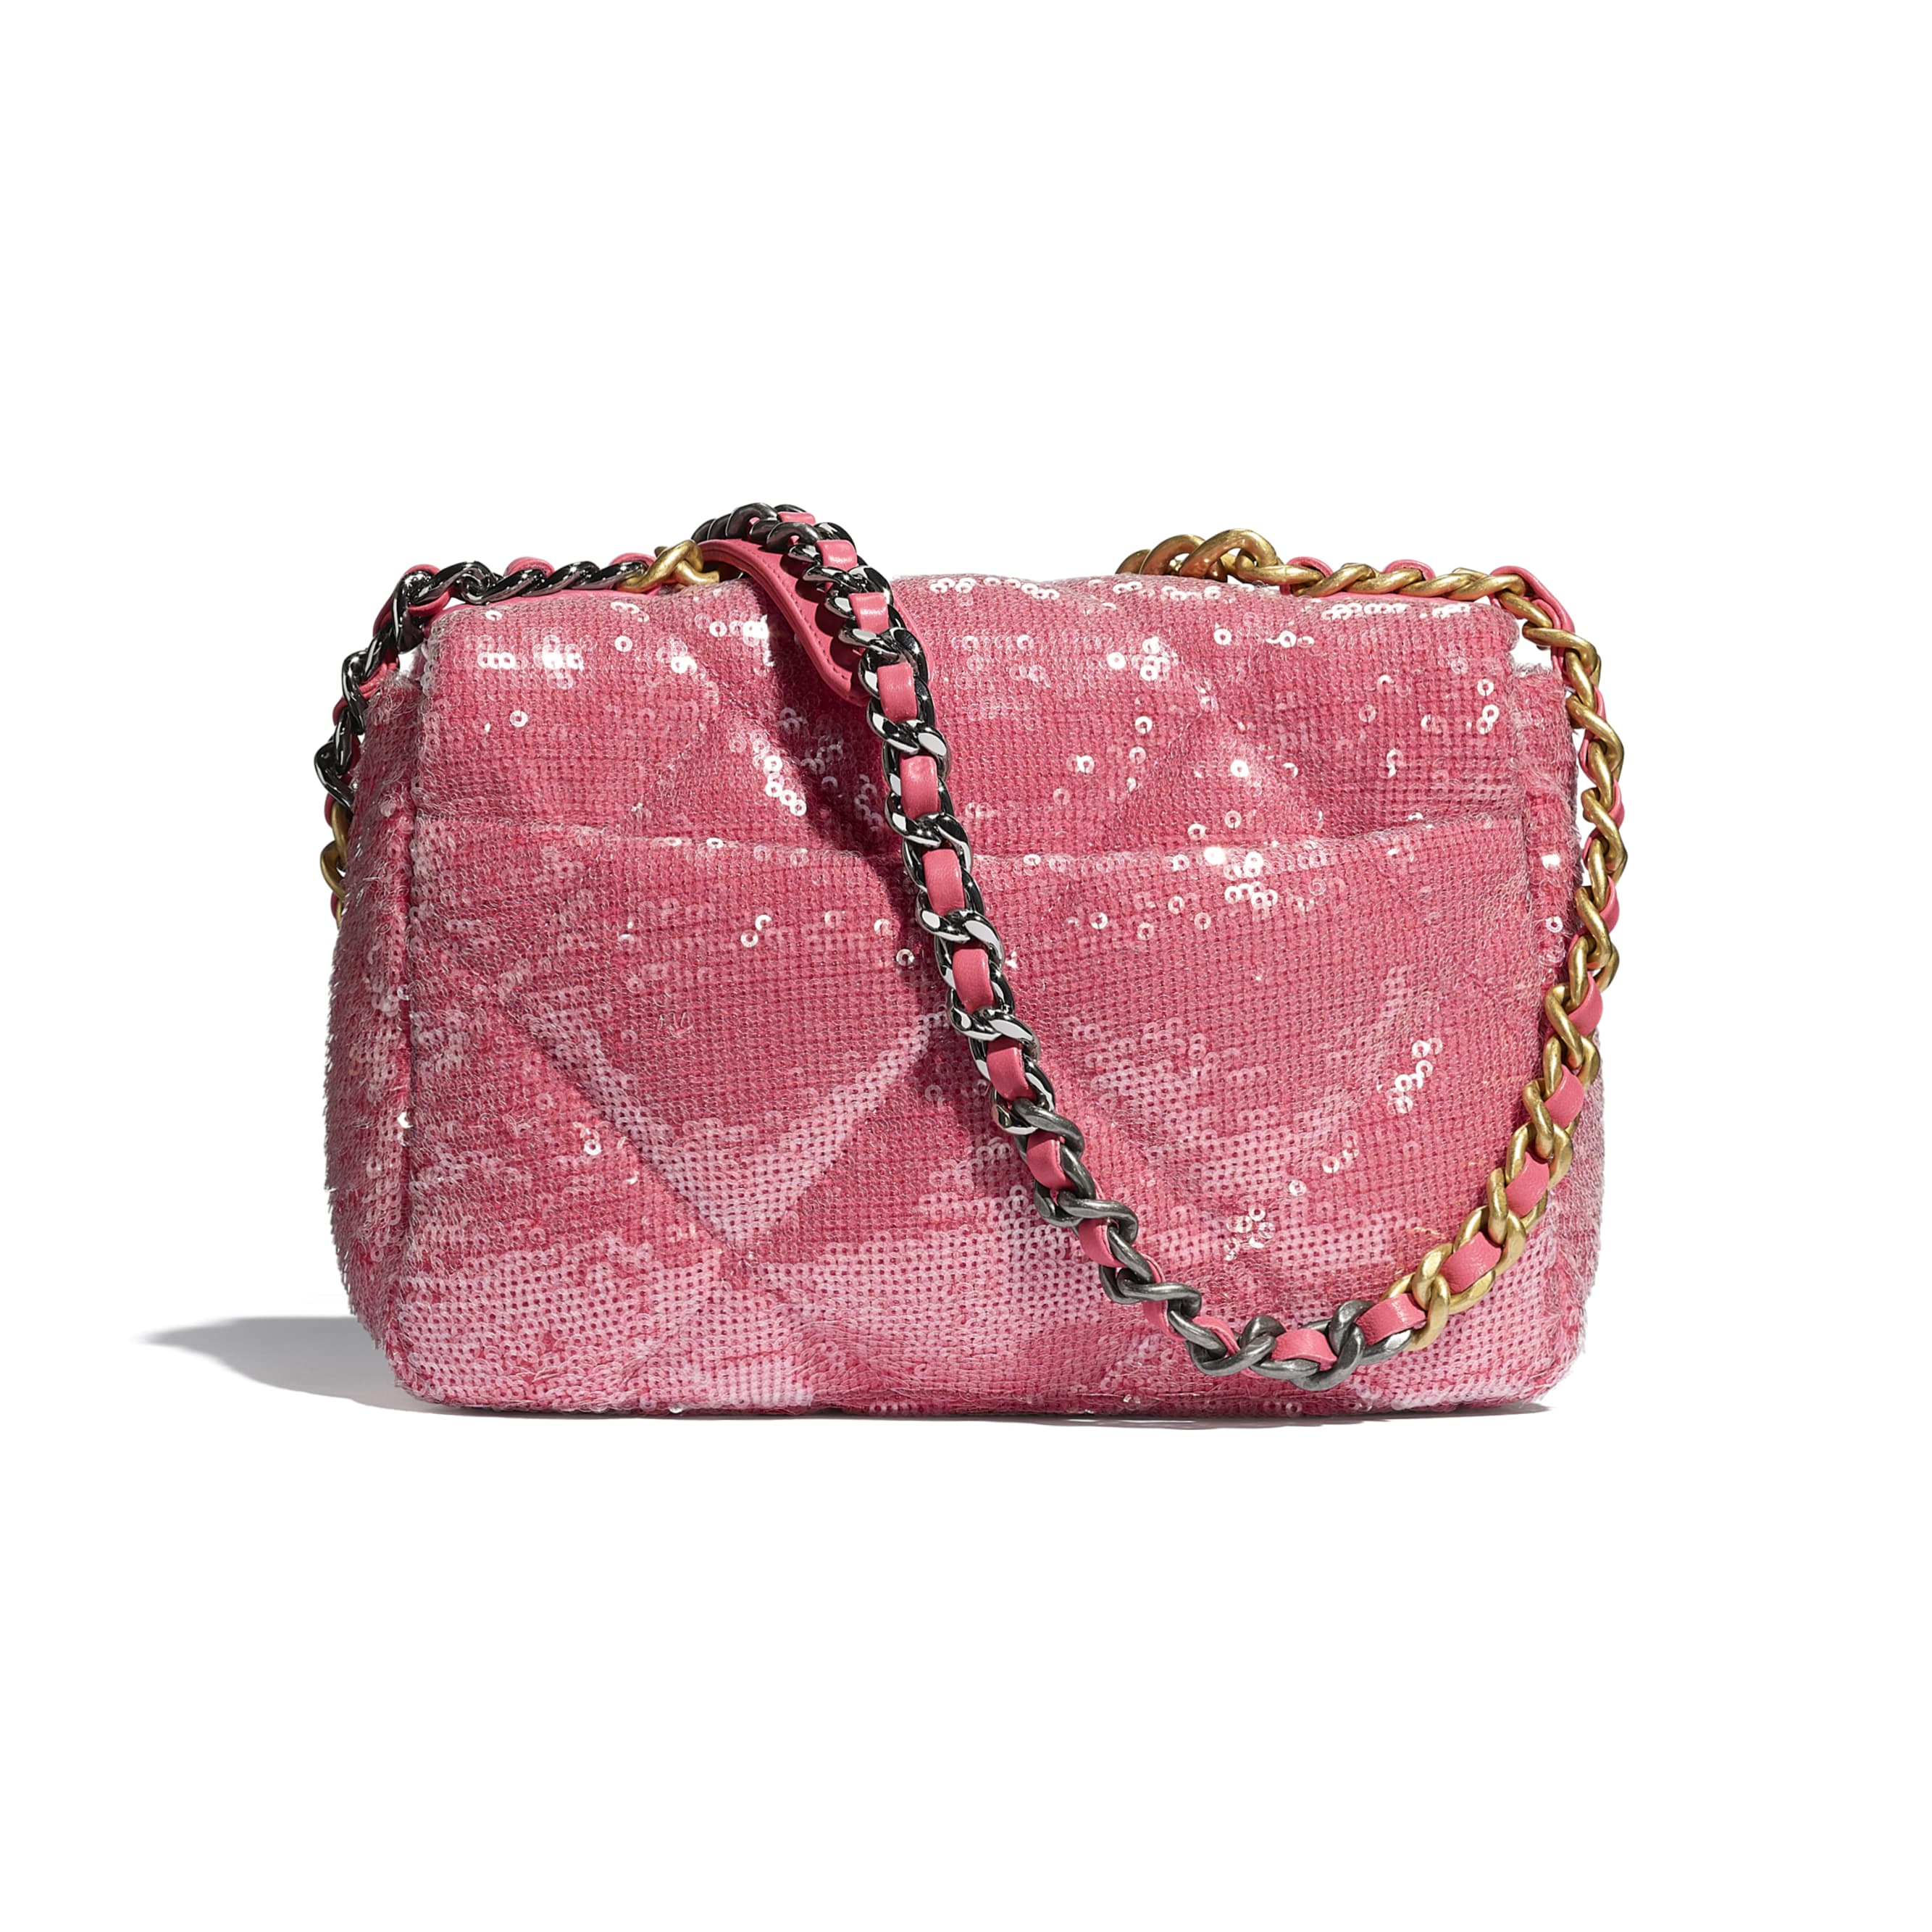 CHANEL 19 Flap Bag - Coral - Sequins, calfksin, silver-tone & gold-tone metal - CHANEL - Alternative view - see standard sized version